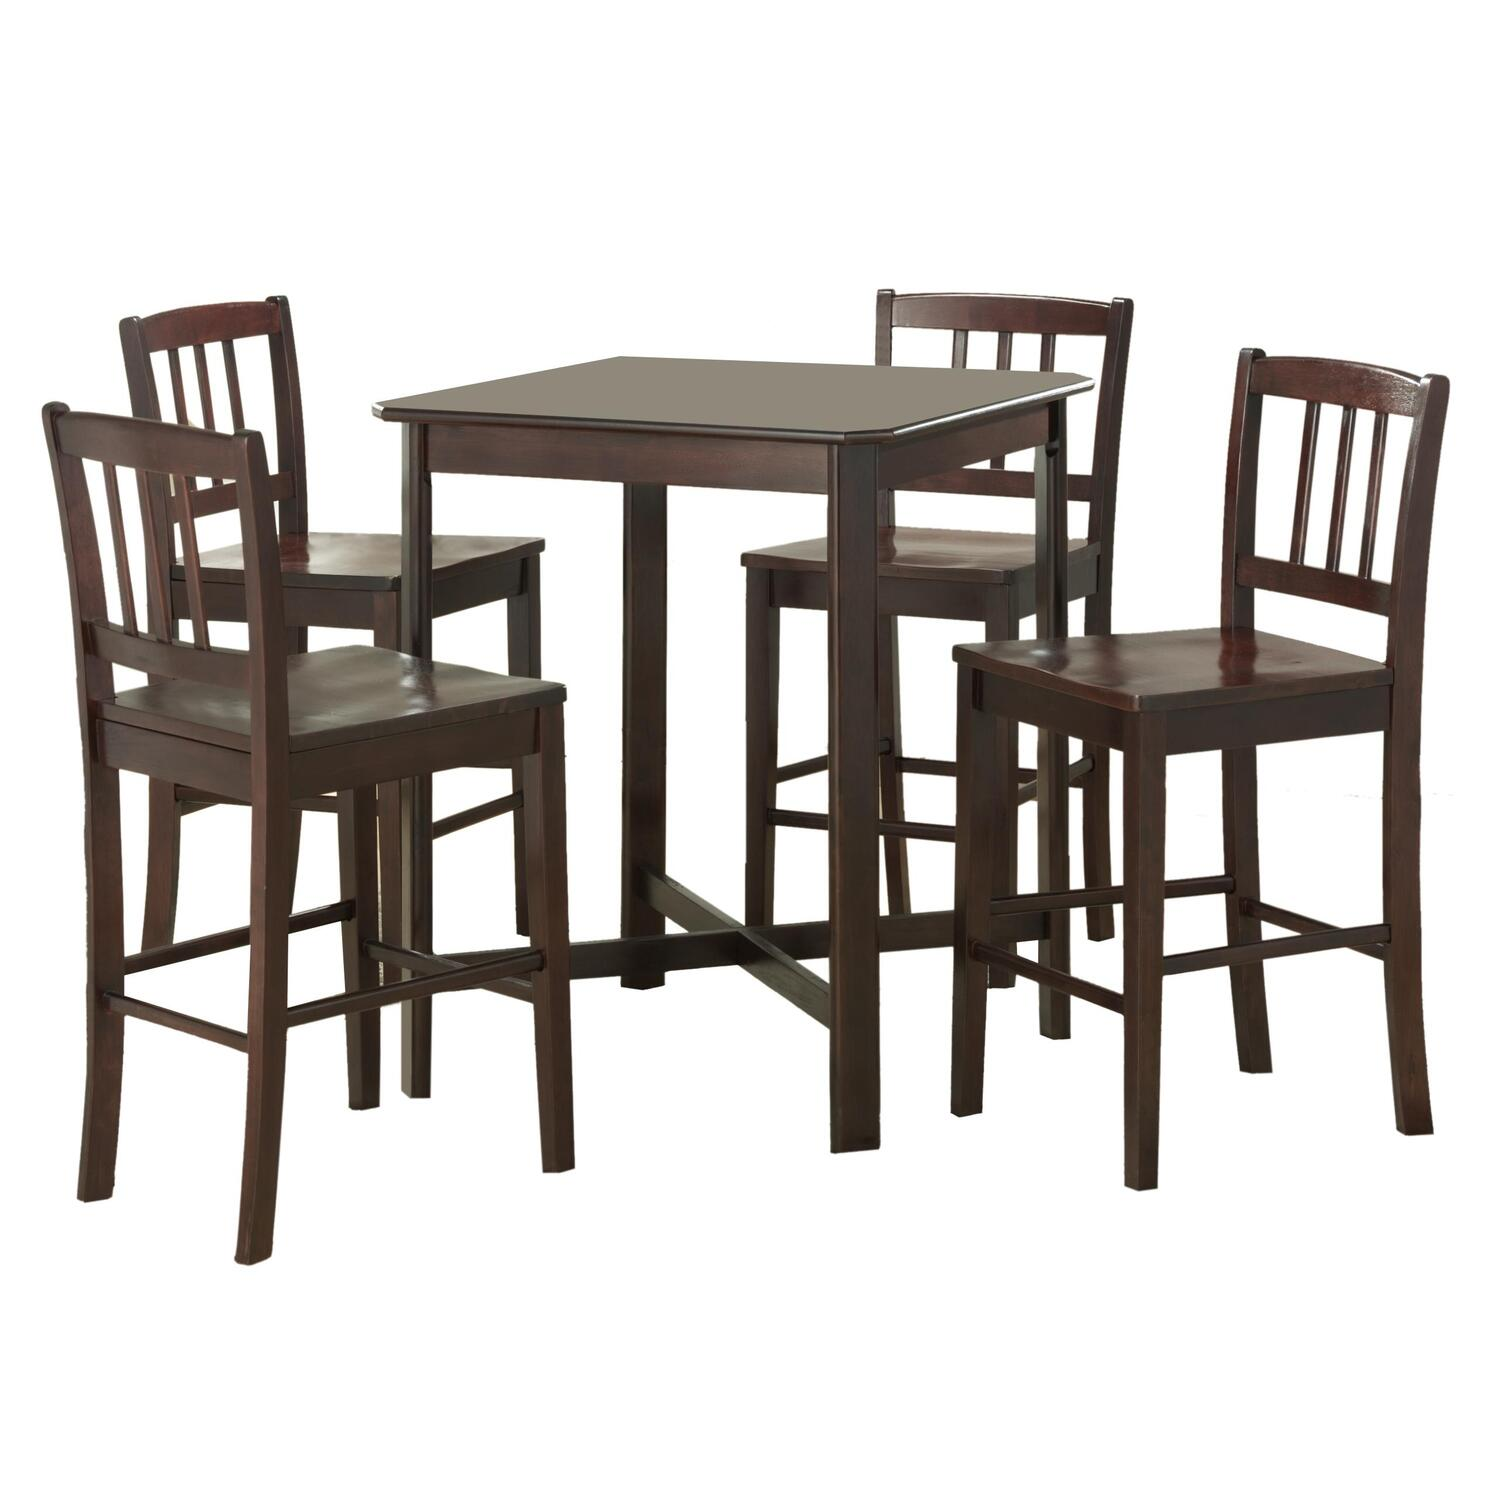 5 piece solid wood pub table set dark wood ojcommerce for High top kitchen tables